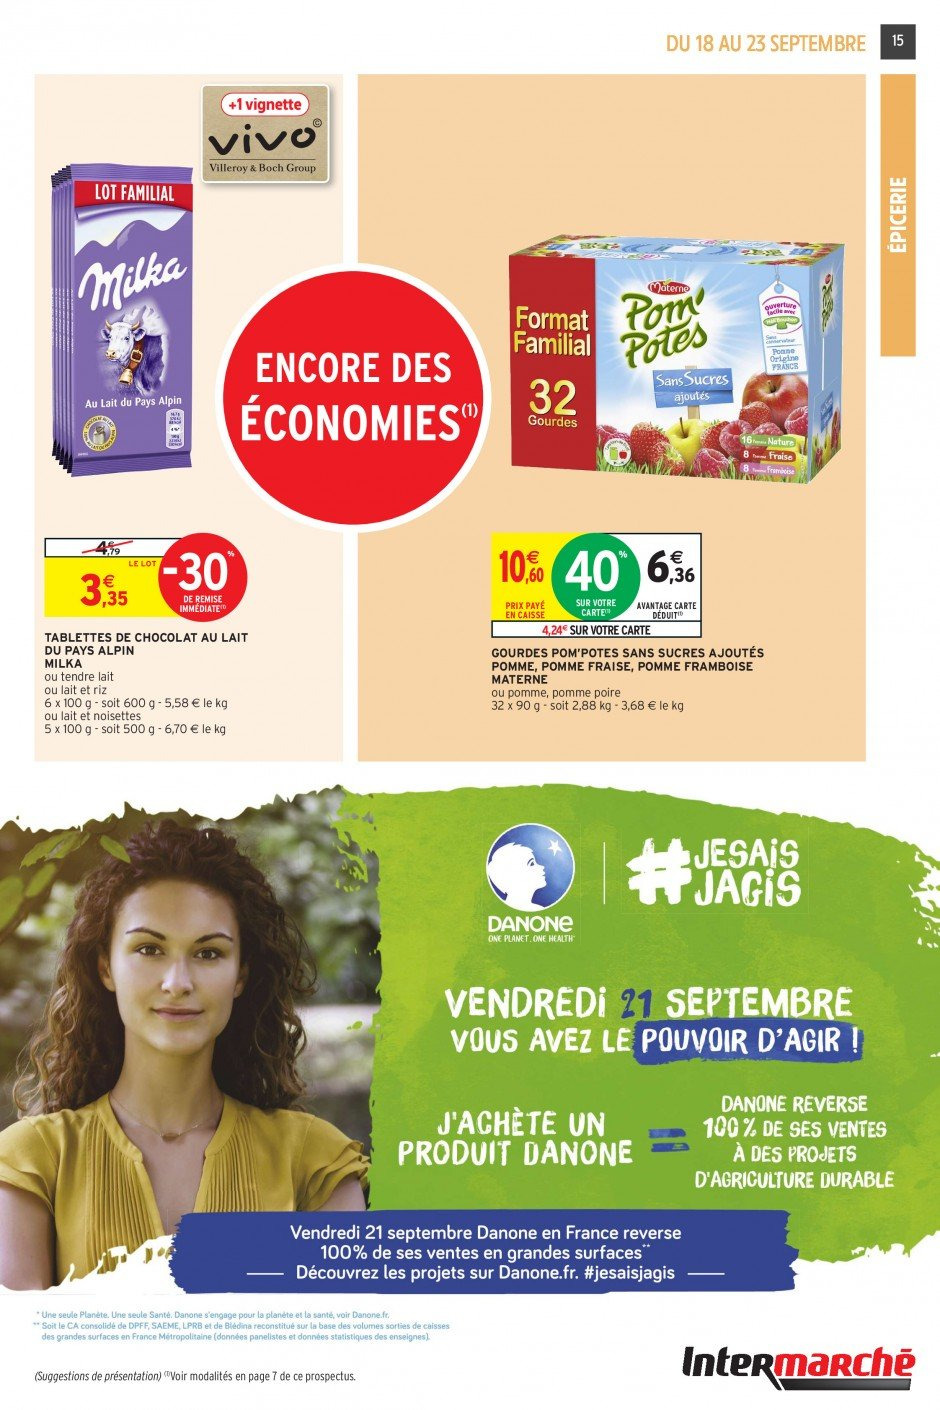 Catalogue Intermarché - 18.09.2018 - 23.09.2018. Page 15.